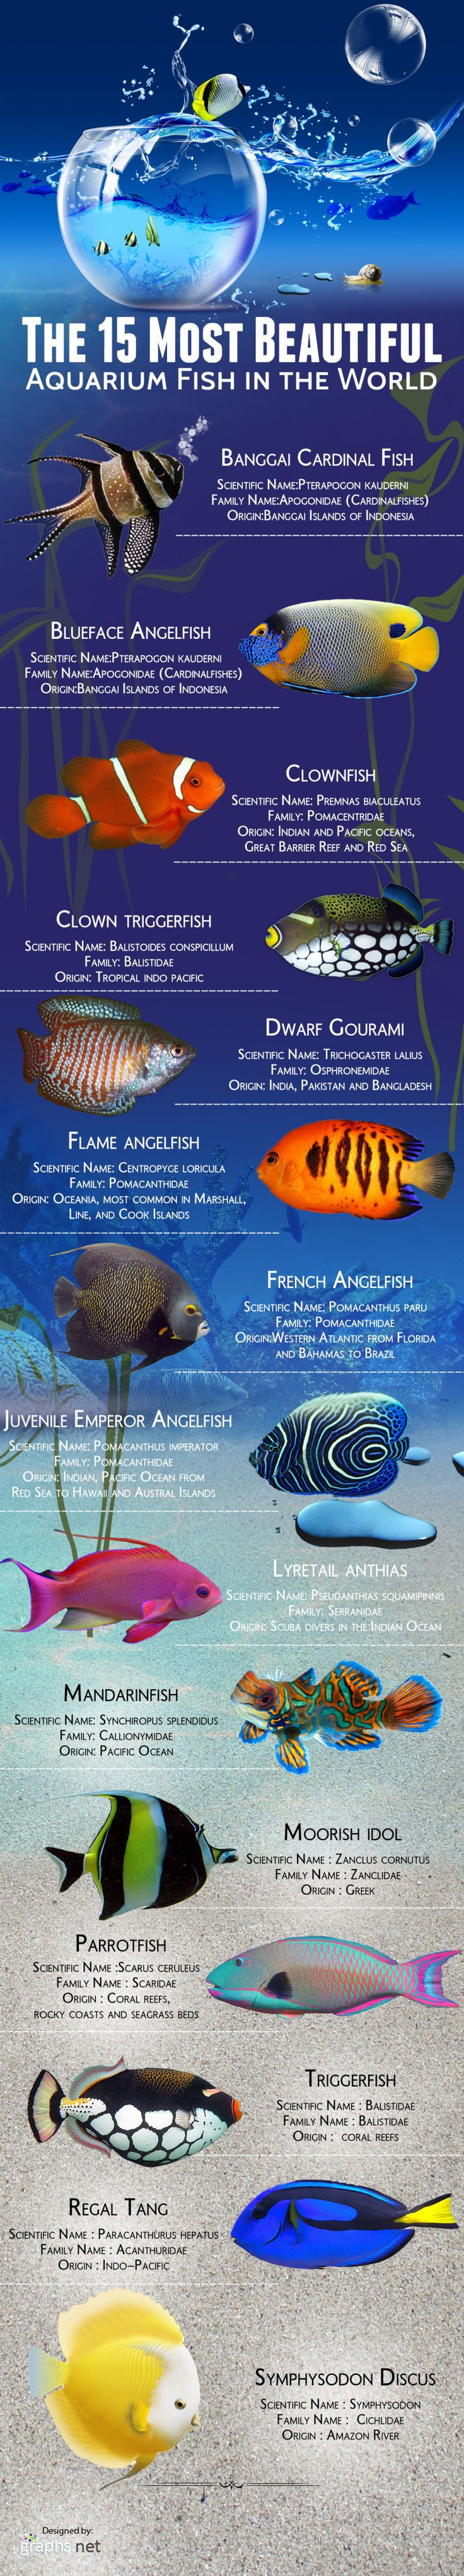 Fish aquarium just dial - The 15 Most Beautiful Aquarium Fish In The World Infographic Salt Water Tanks